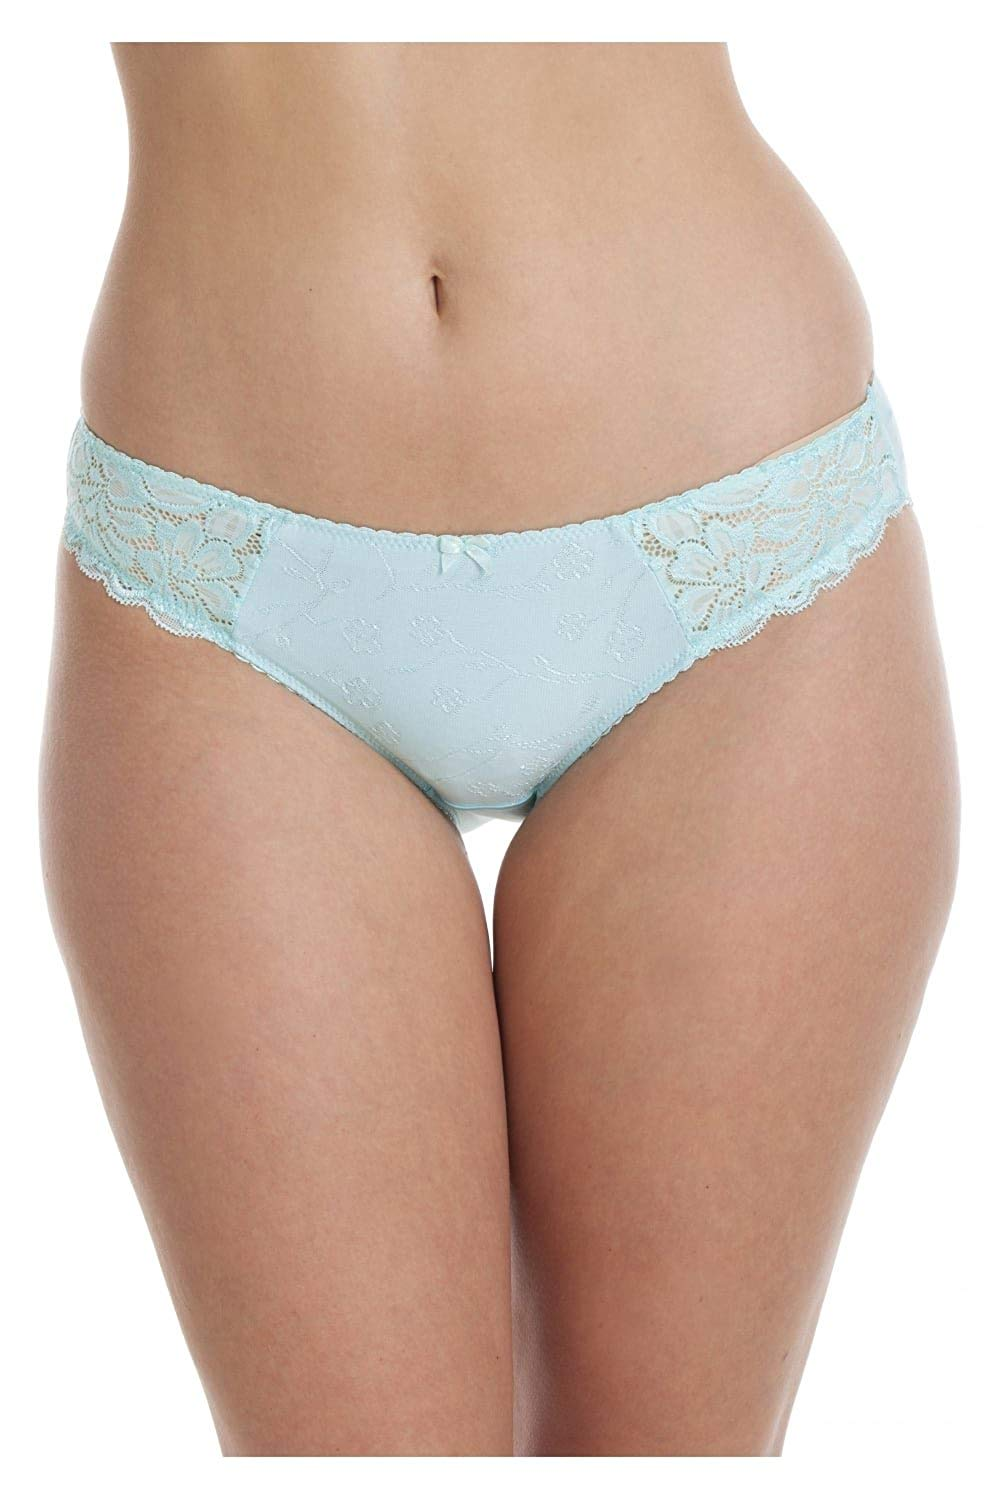 4eba72fb6384 Camille Womens Ladies Serenity Jacquard Underwear High Leg Blue Briefs 6-16